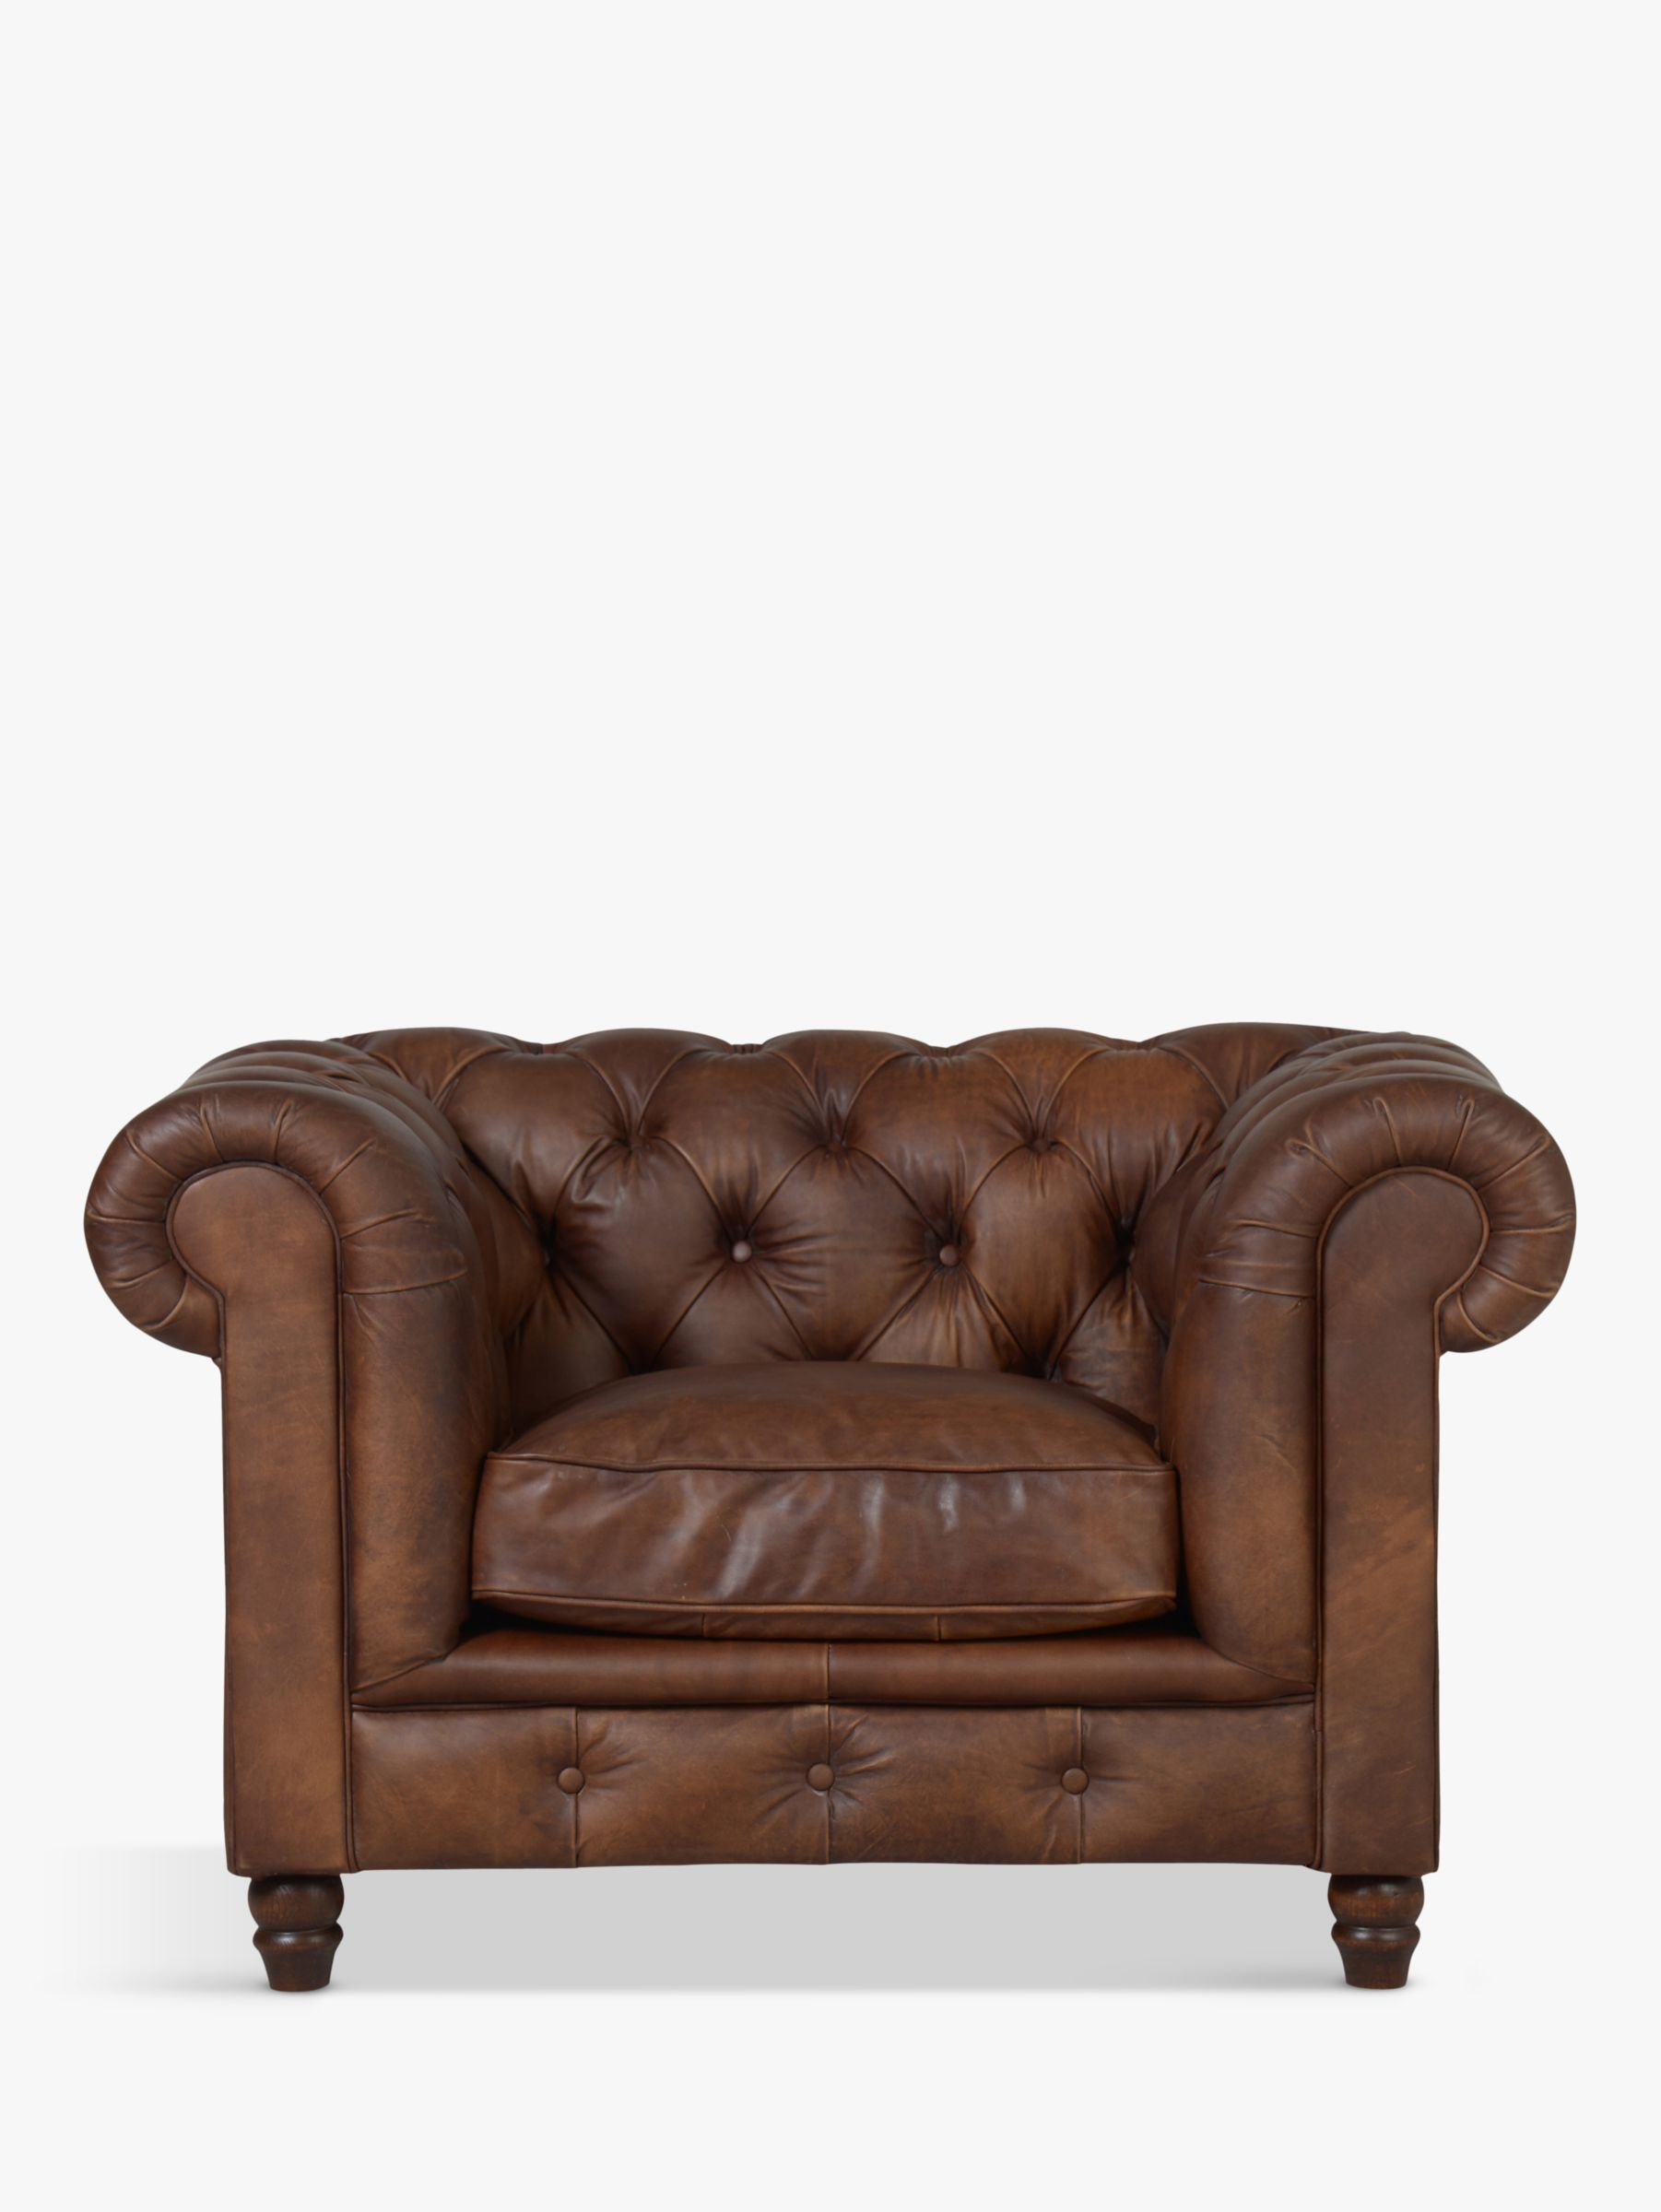 Halo Halo Earle Chesterfield Leather Armchair, Antique Whisky